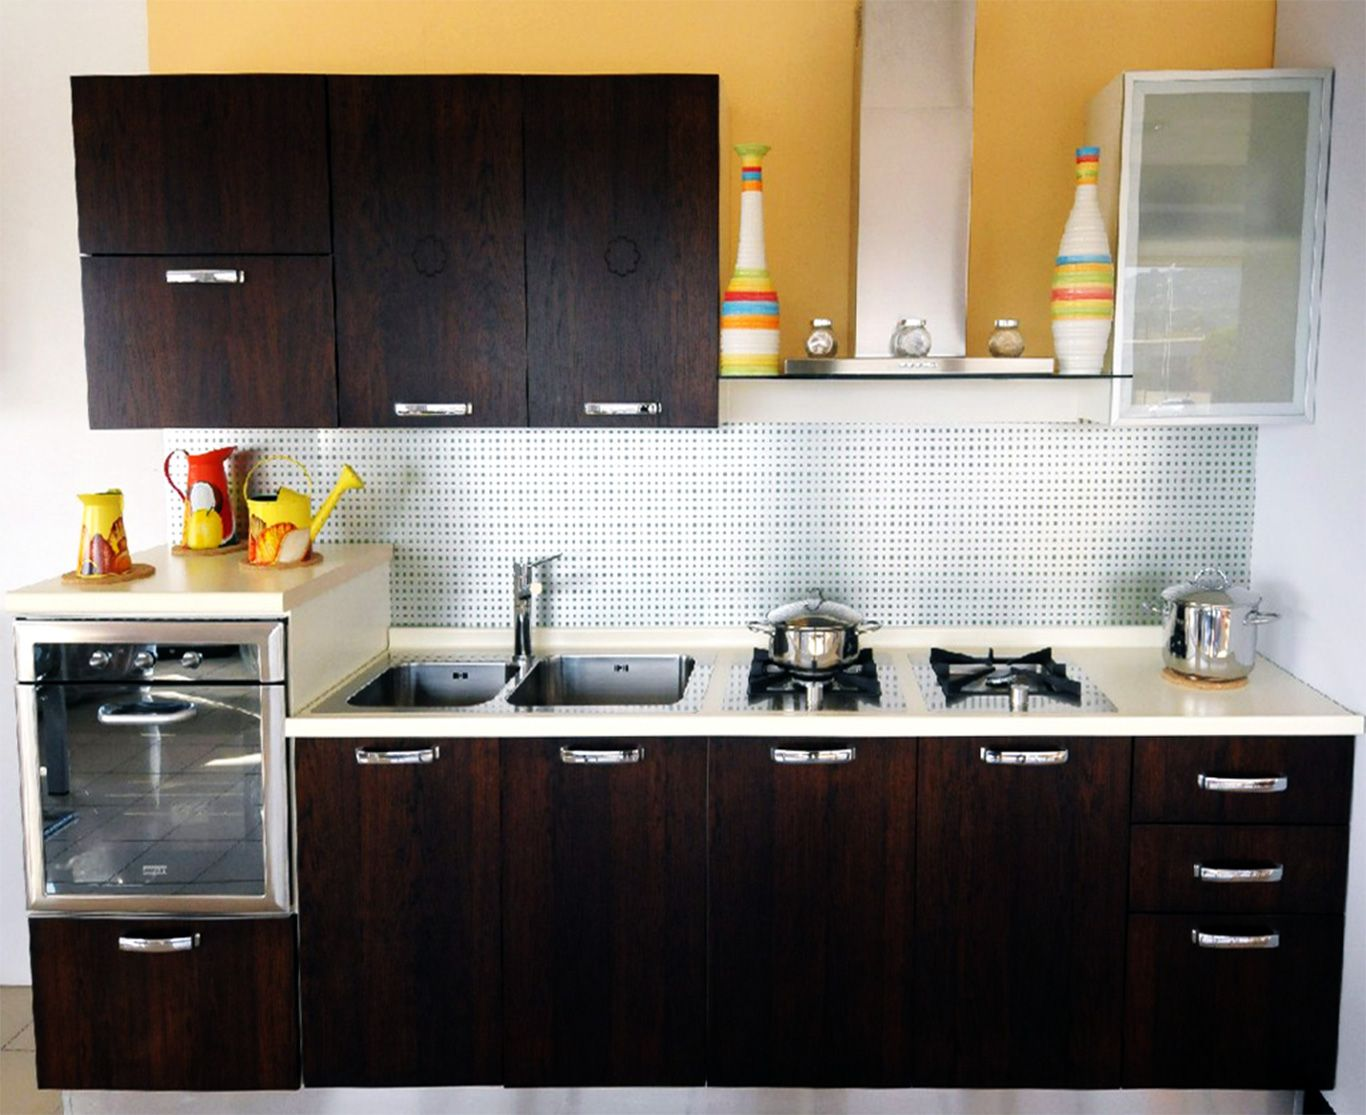 Pune kitchens is the modular kitchen shutters supplier for Kitchen designs simple